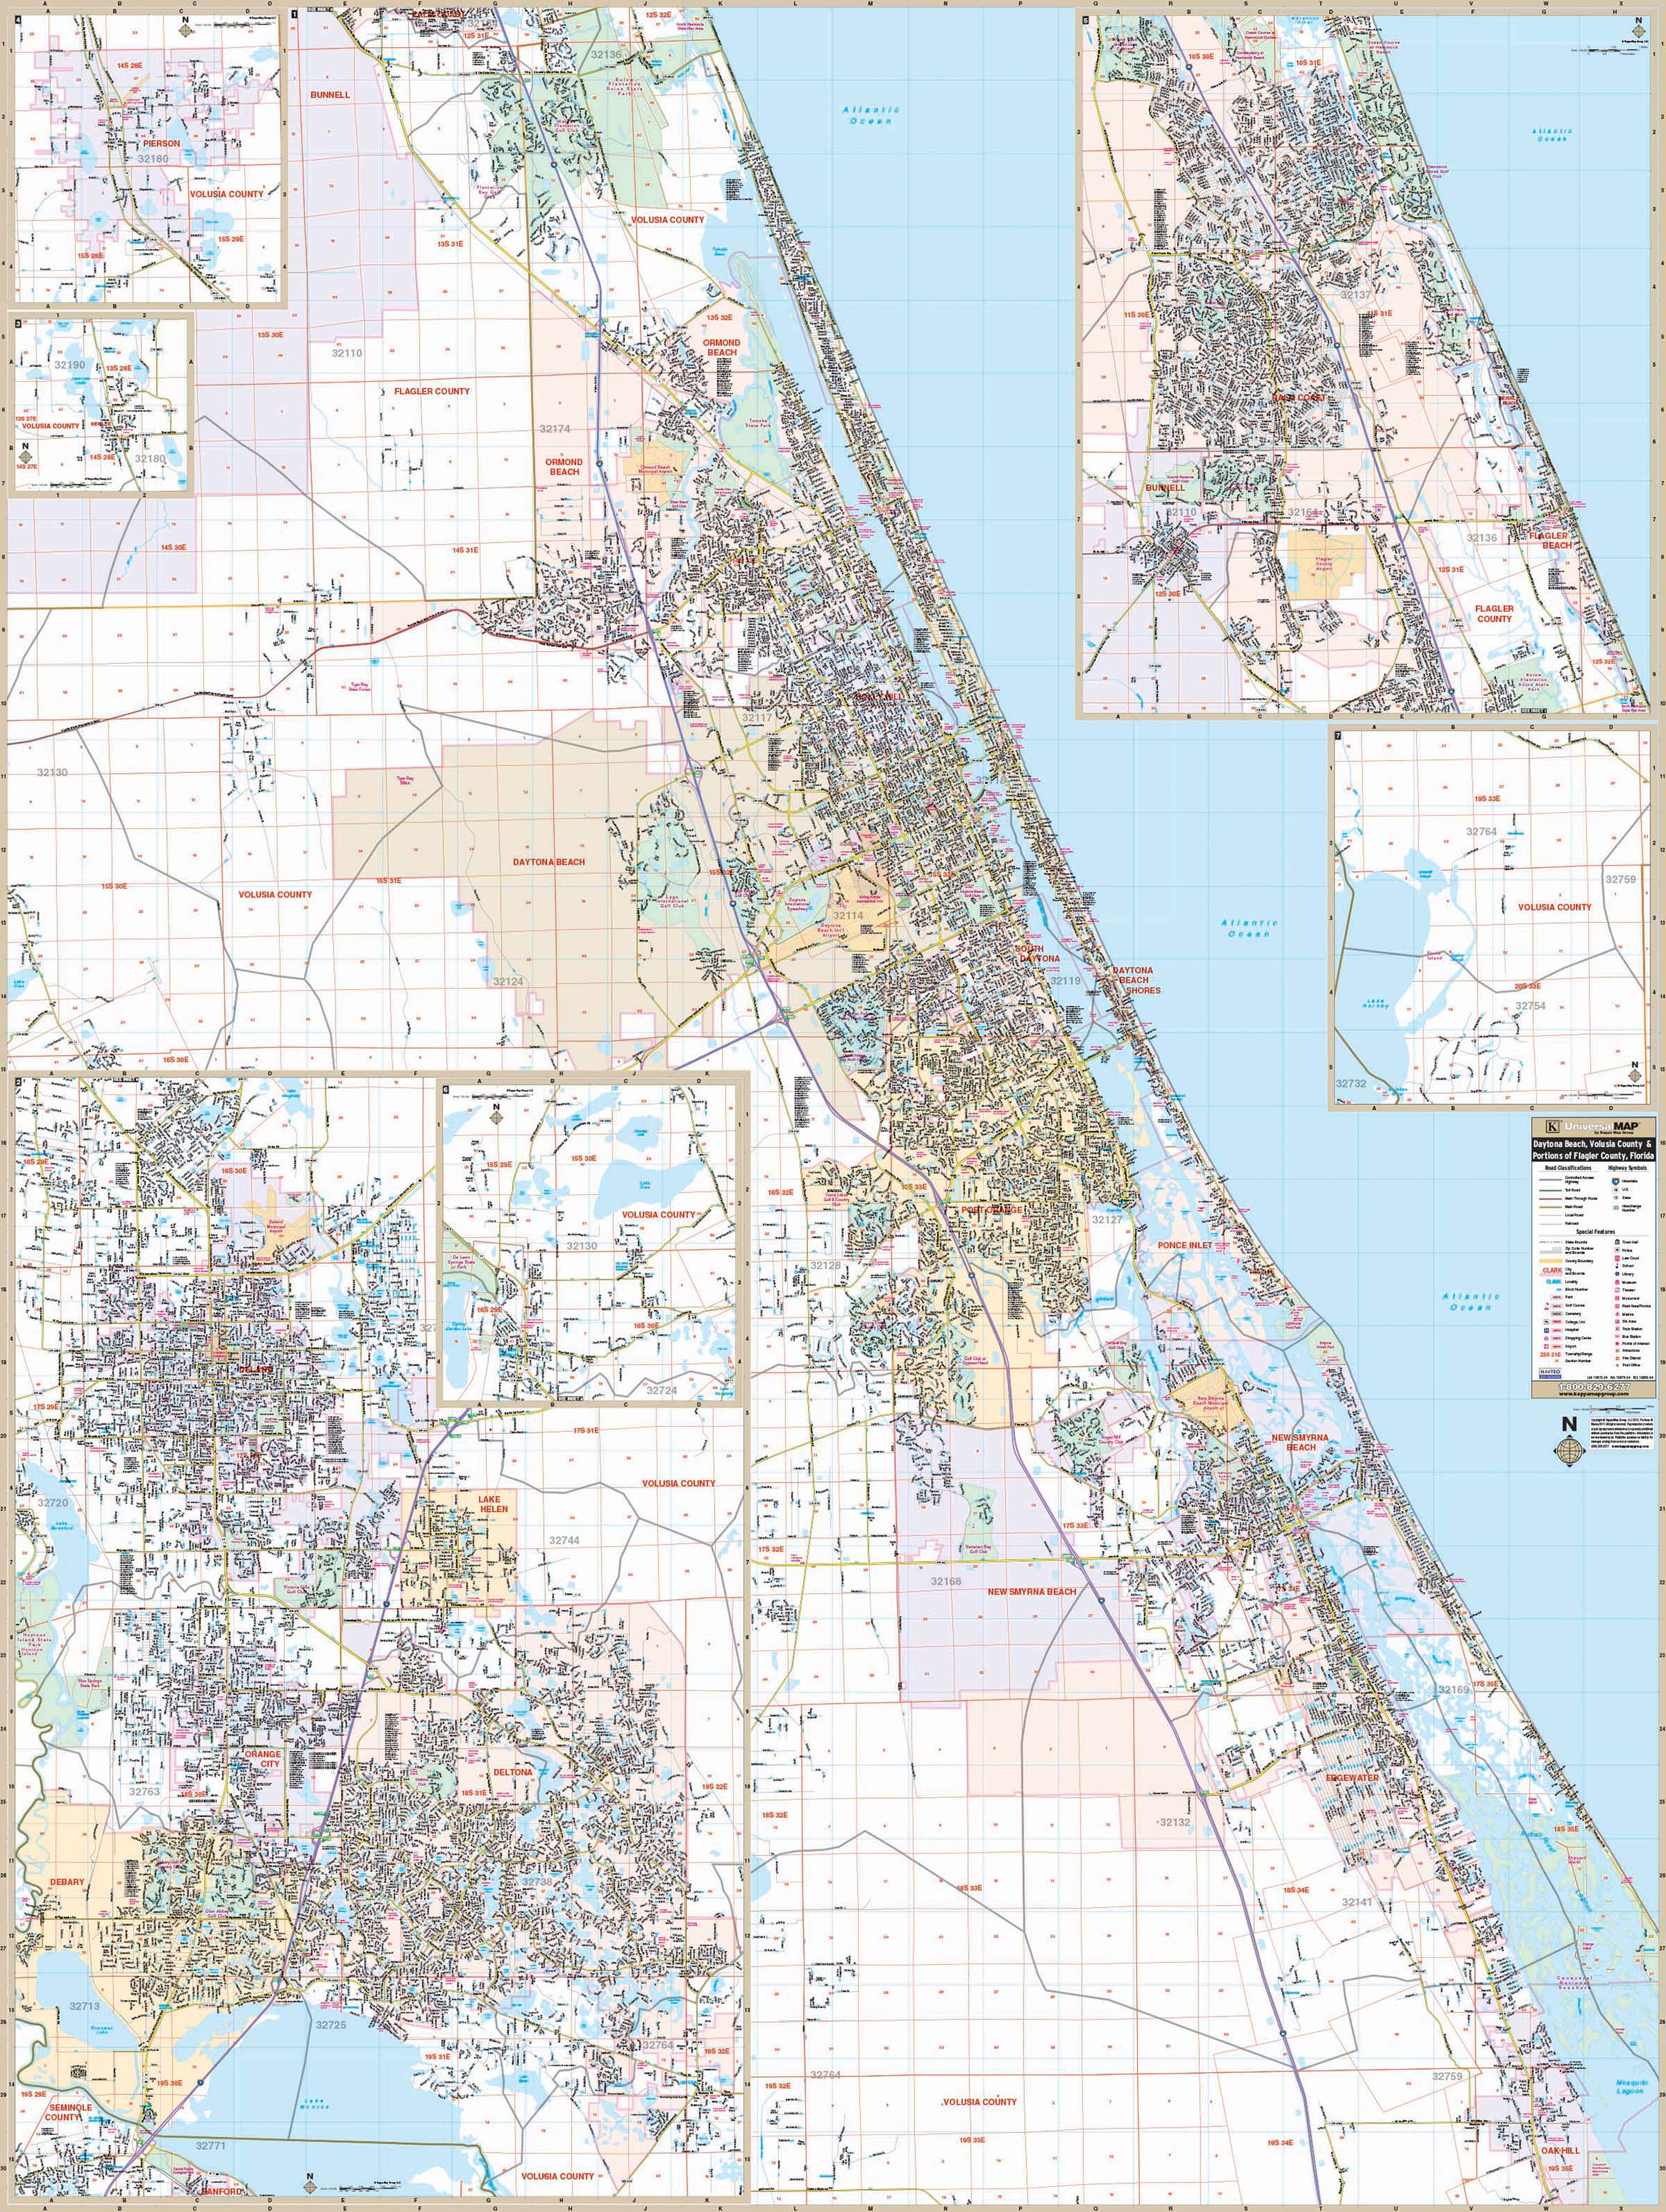 Map Of Florida Showing Daytona Beach.Daytona Beach Fl Wall Map Kappa Map Group